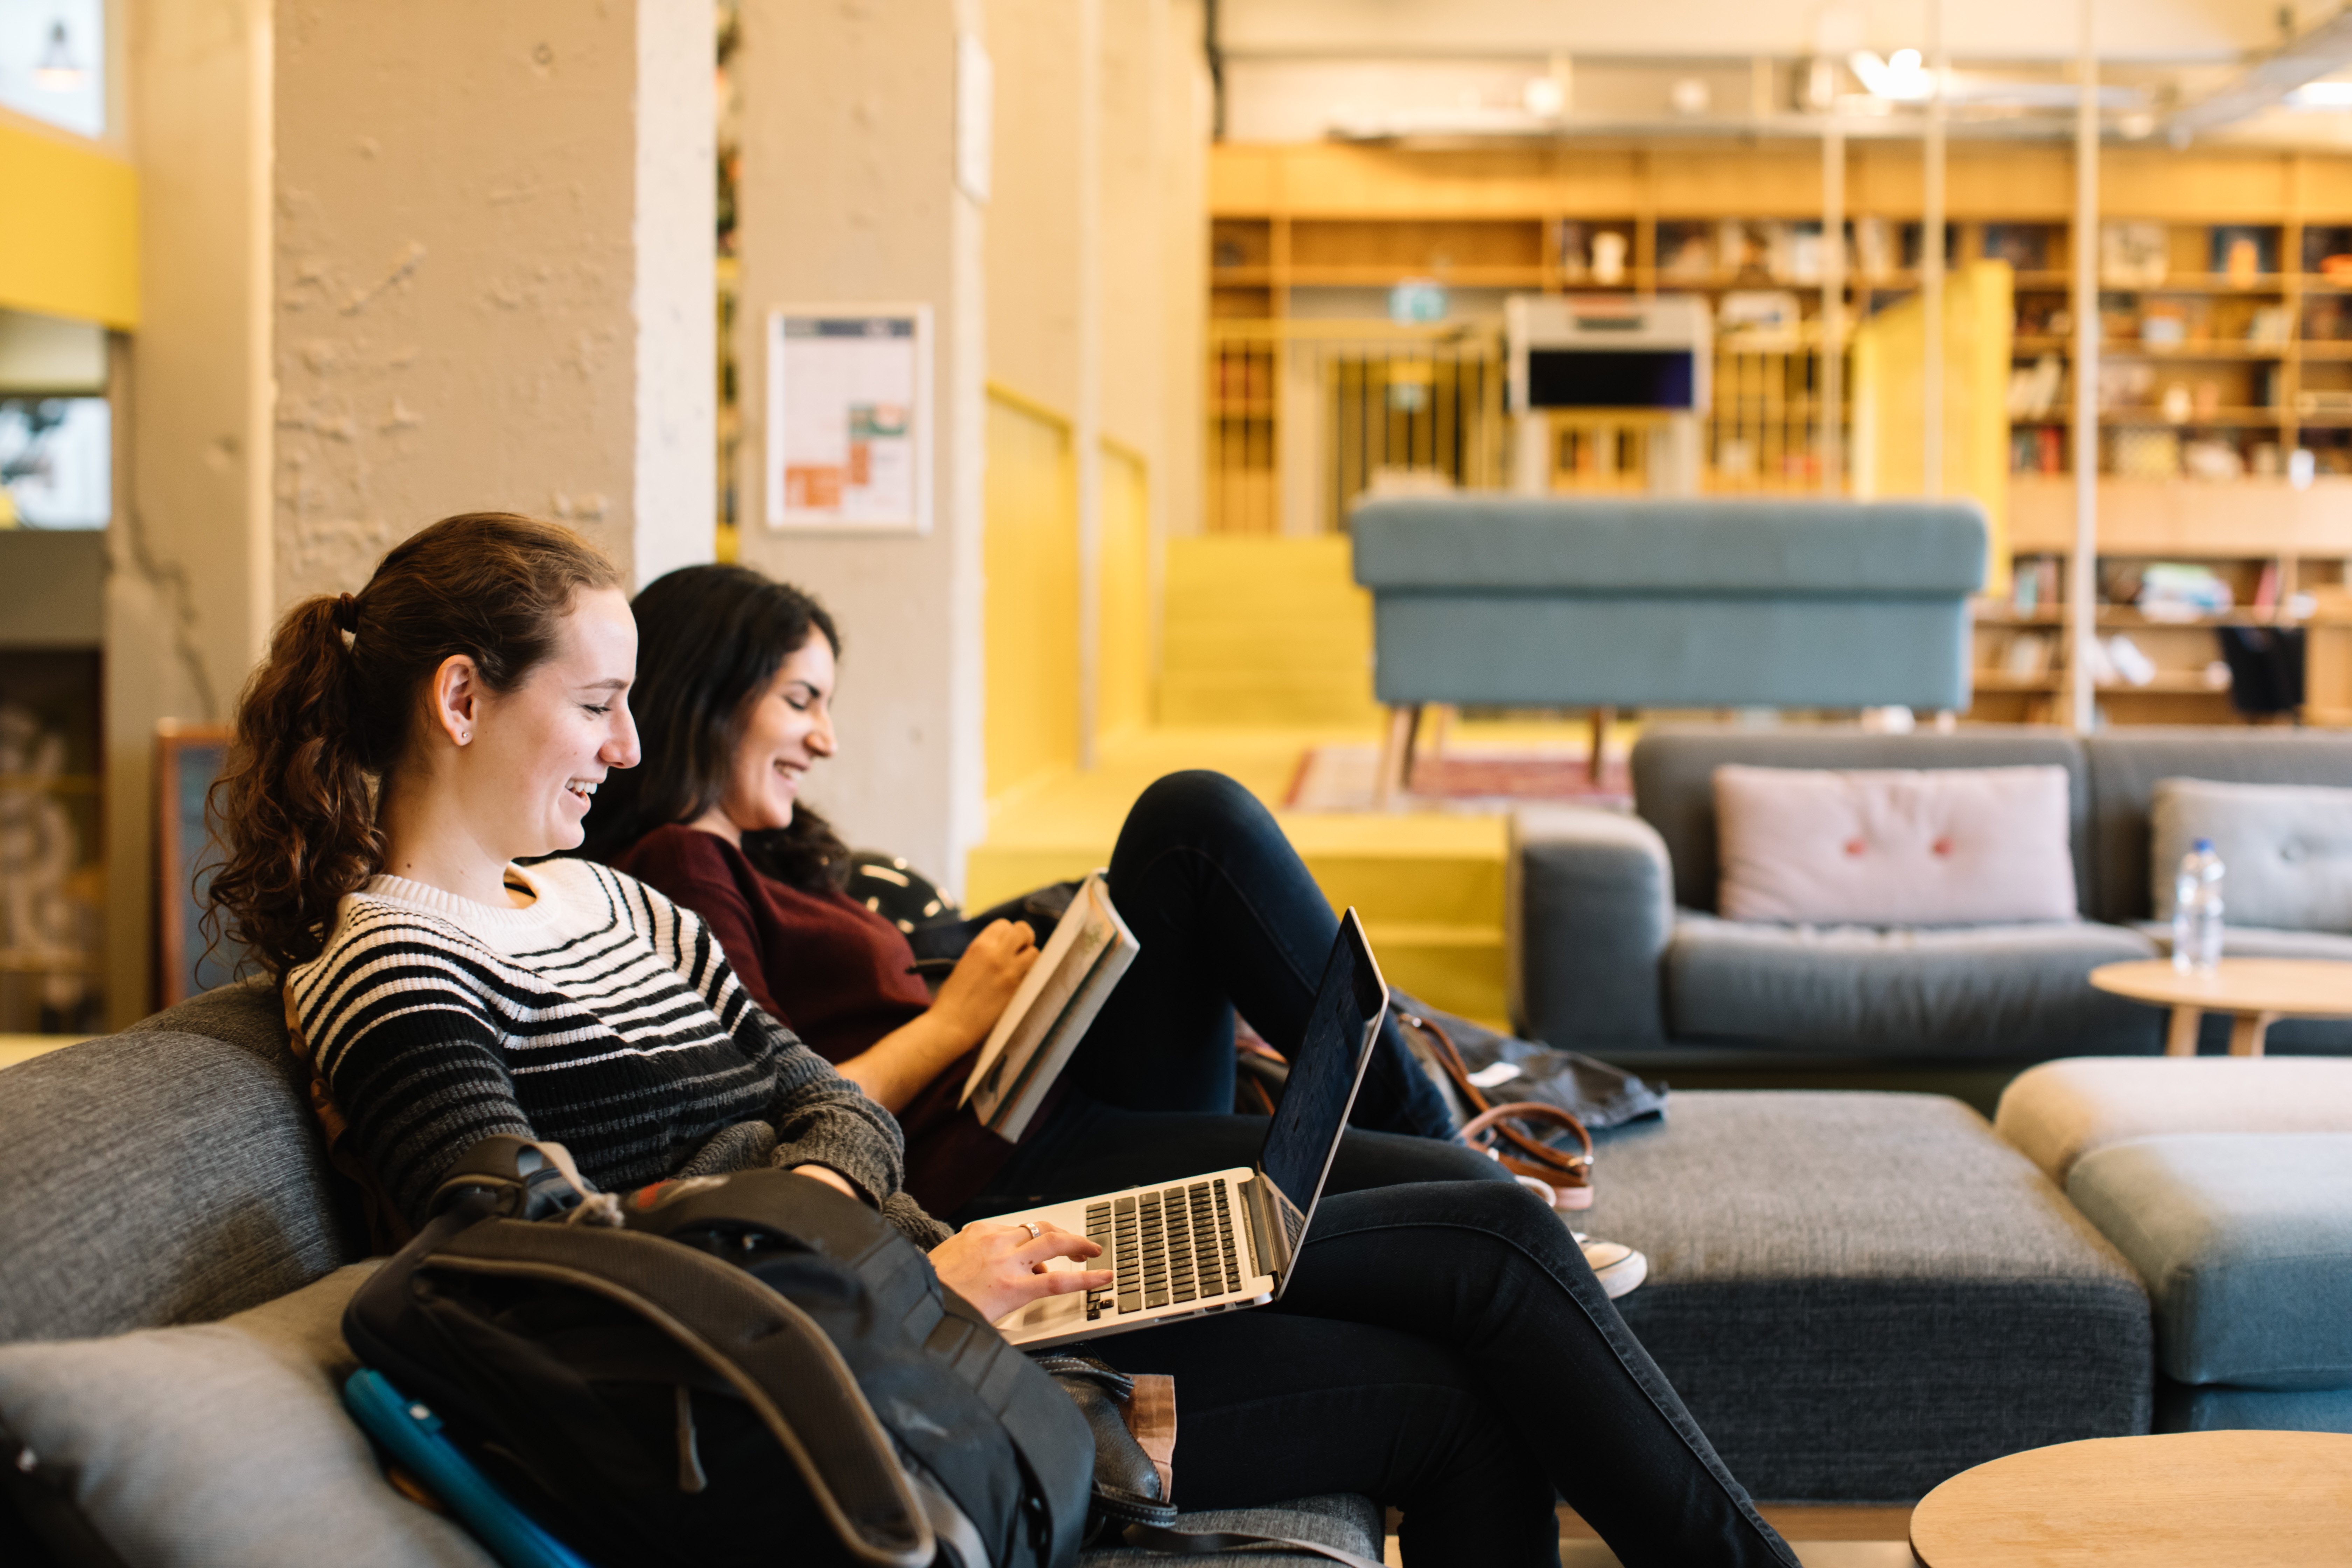 Two students working on their laptops in a campus lounge